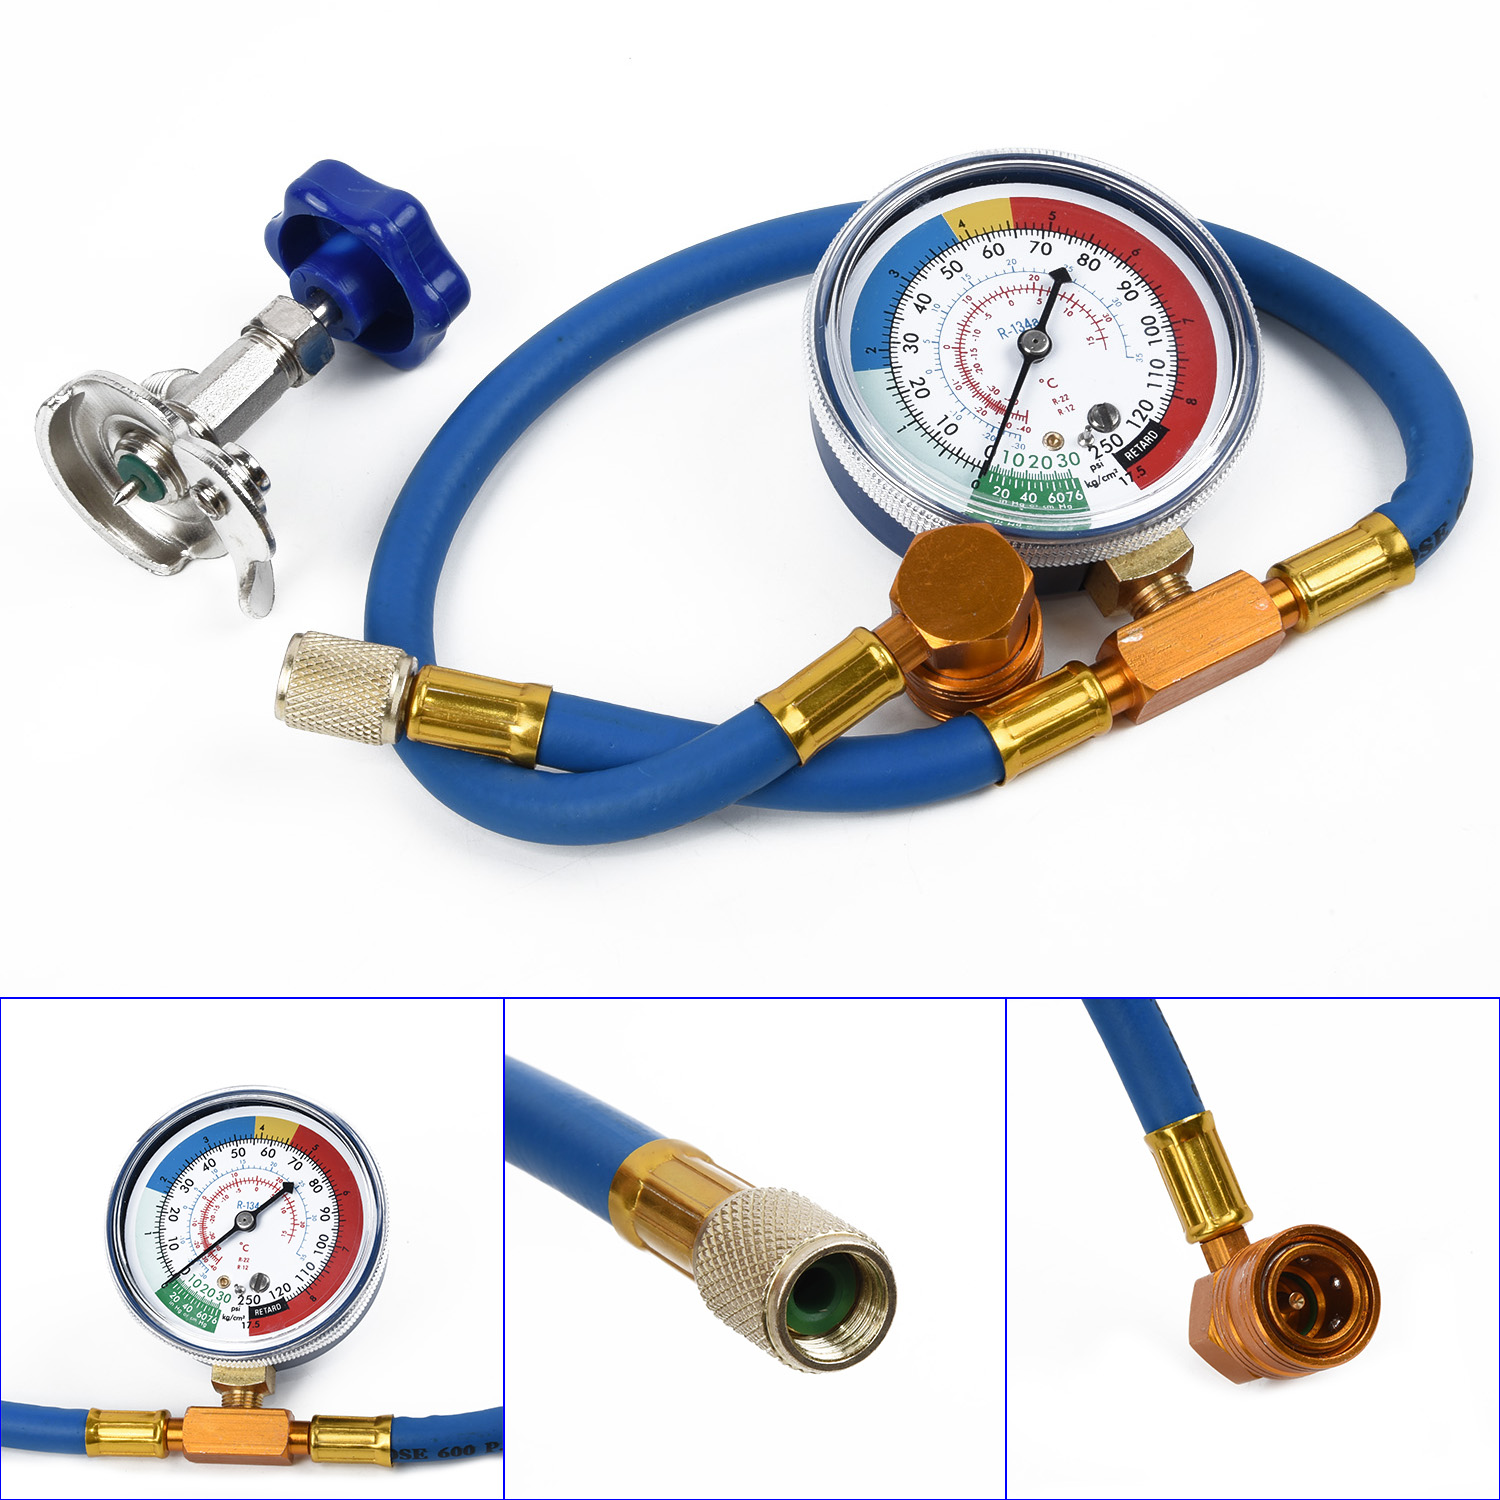 R134A R12 Hose Blue Air Conditioning Recharge Measuring Kit Gas Gauge Equipment Plastic Metal Accessory Practical